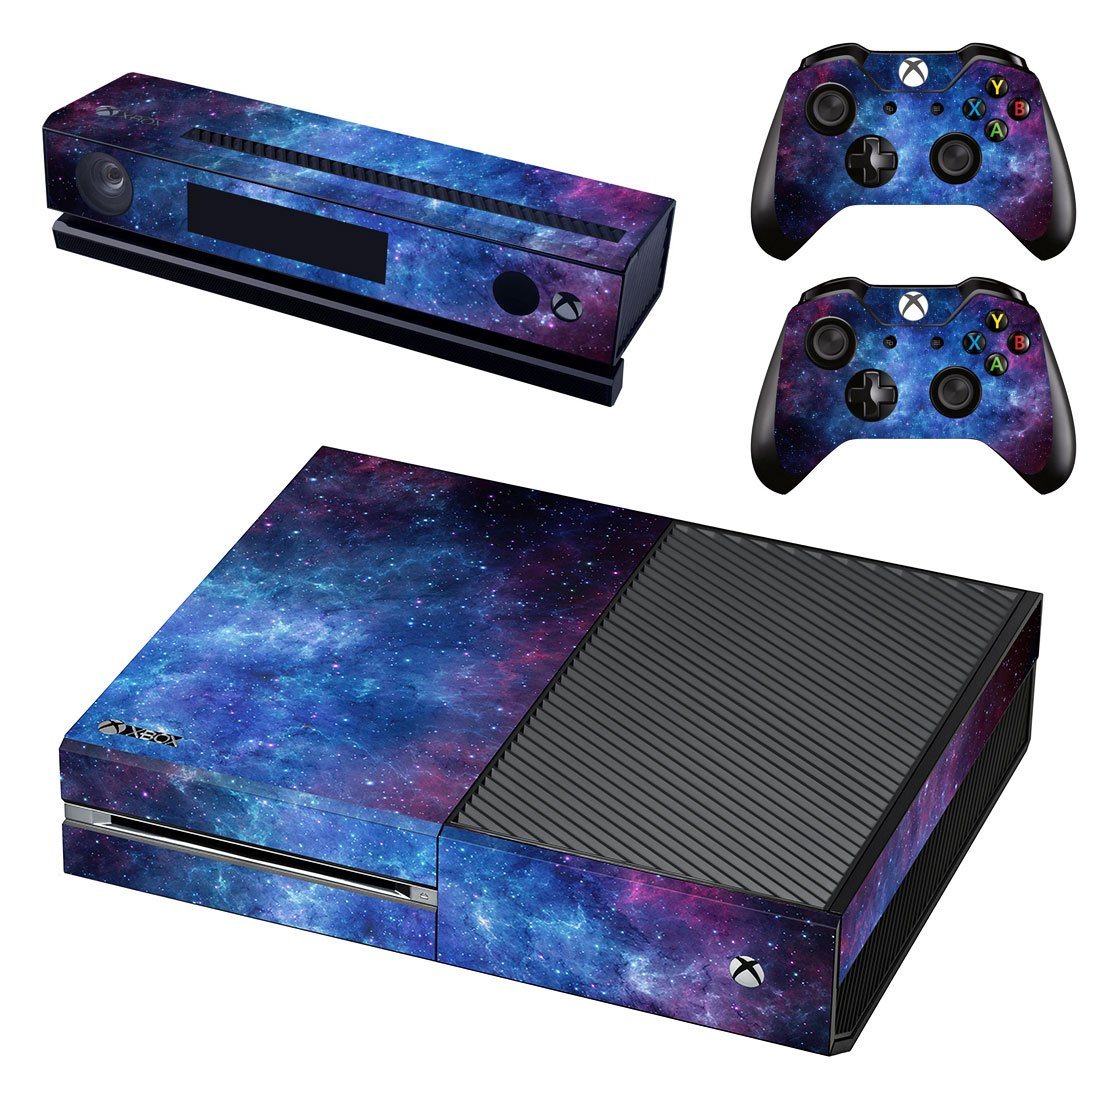 UUShop Protective Vinyl Skin Decal Cover for Microsoft Xbox One Console wrap sticker skins with two Free wireless controller decals Blue and Purple Nebula(NOT for One S or X)